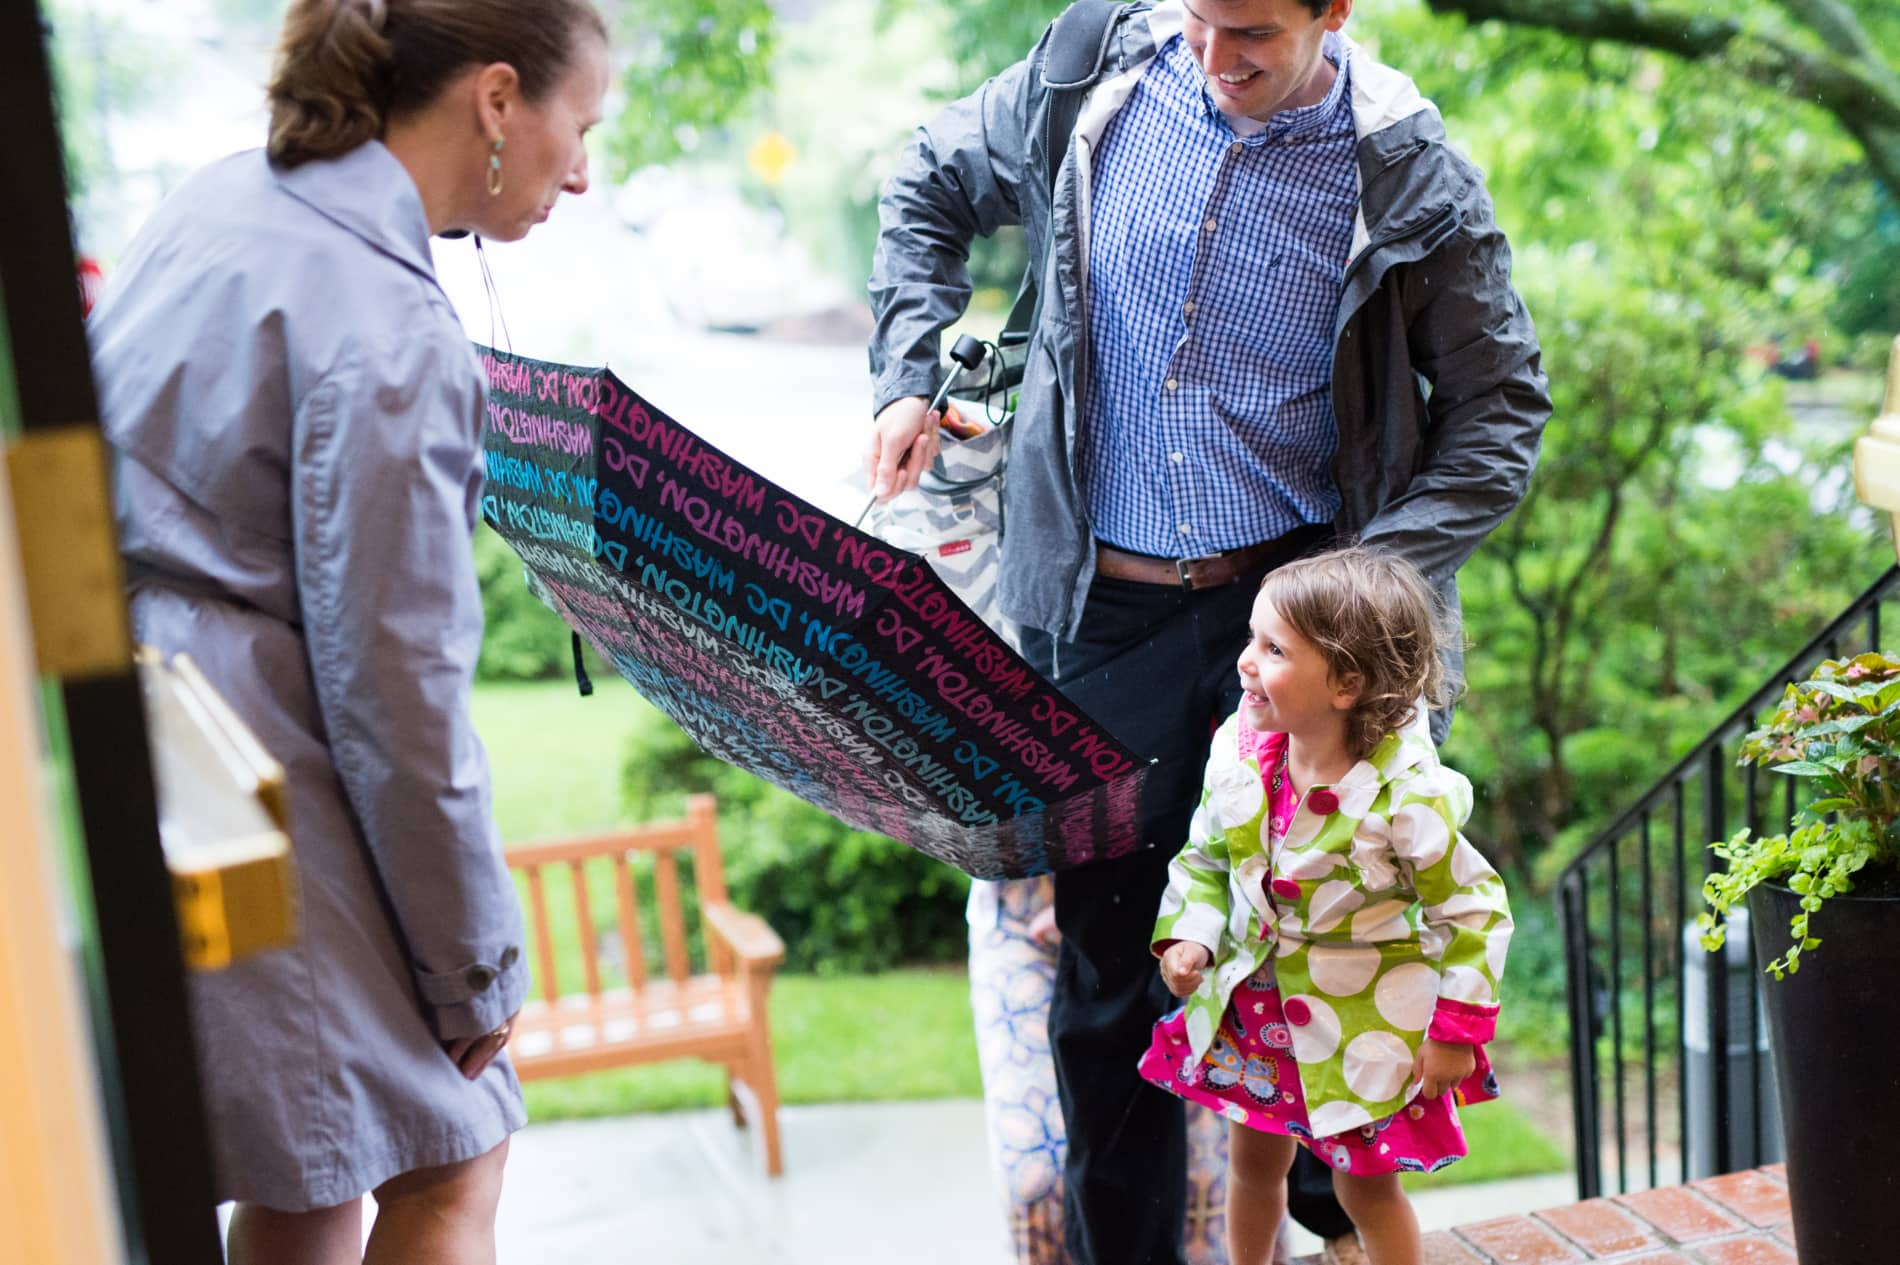 A woman bends down to talk to a young girl in a raincoat and her father holding an umbrella coming up brick steps.